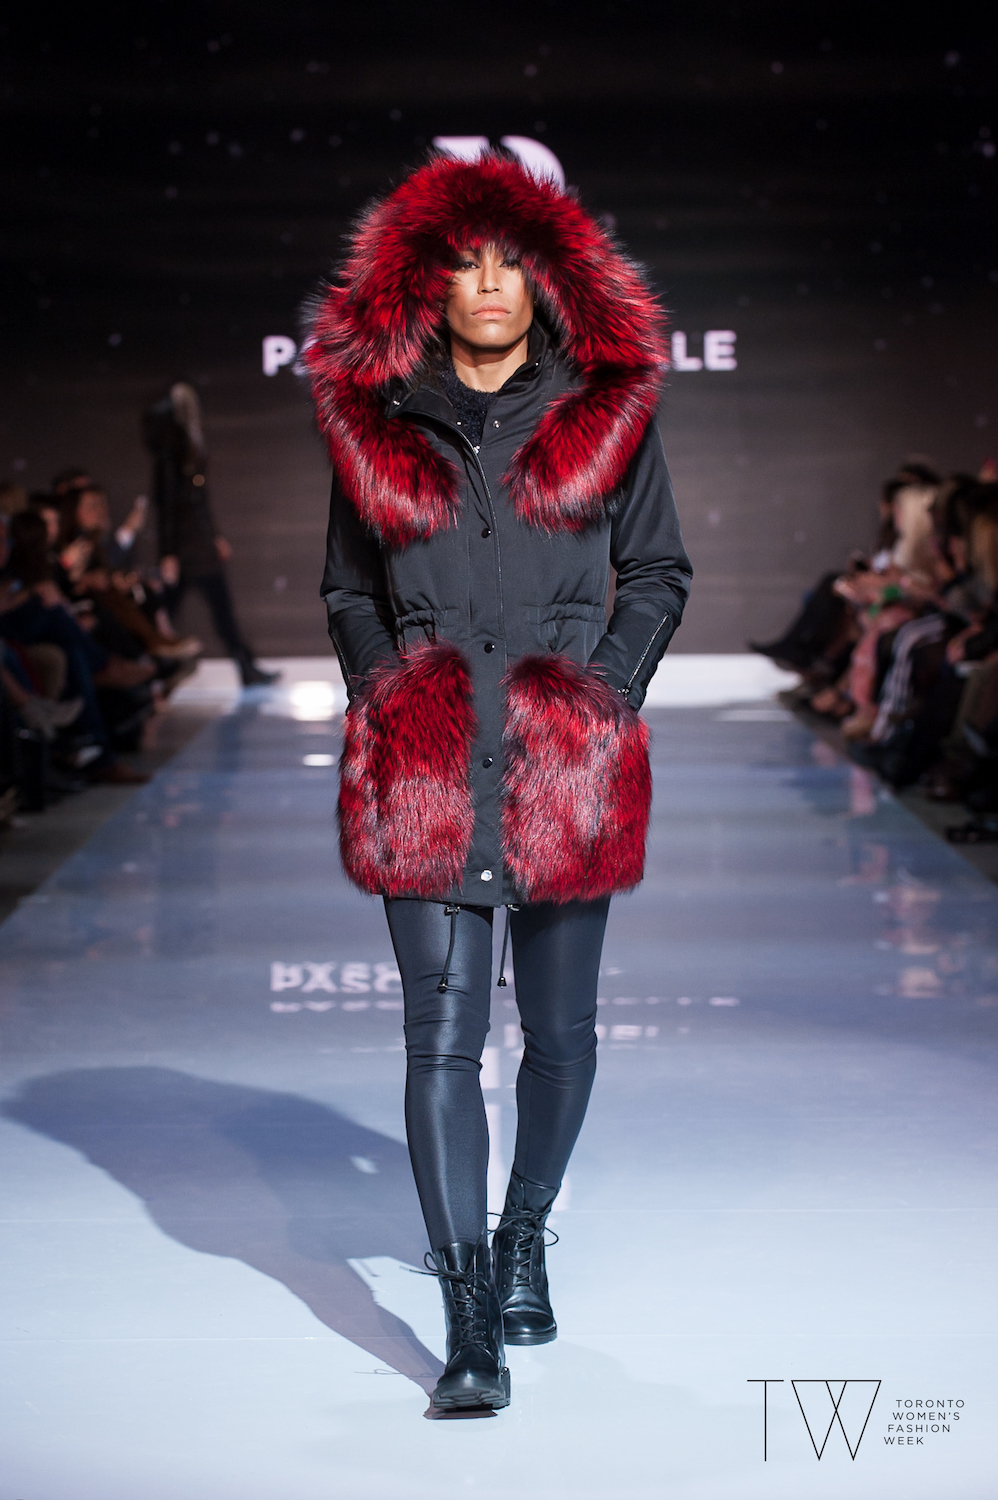 pascal_labelle-twfw-toronto-womens-fashion-week-photo-credit-che-rosales-womens-look-3.jpg